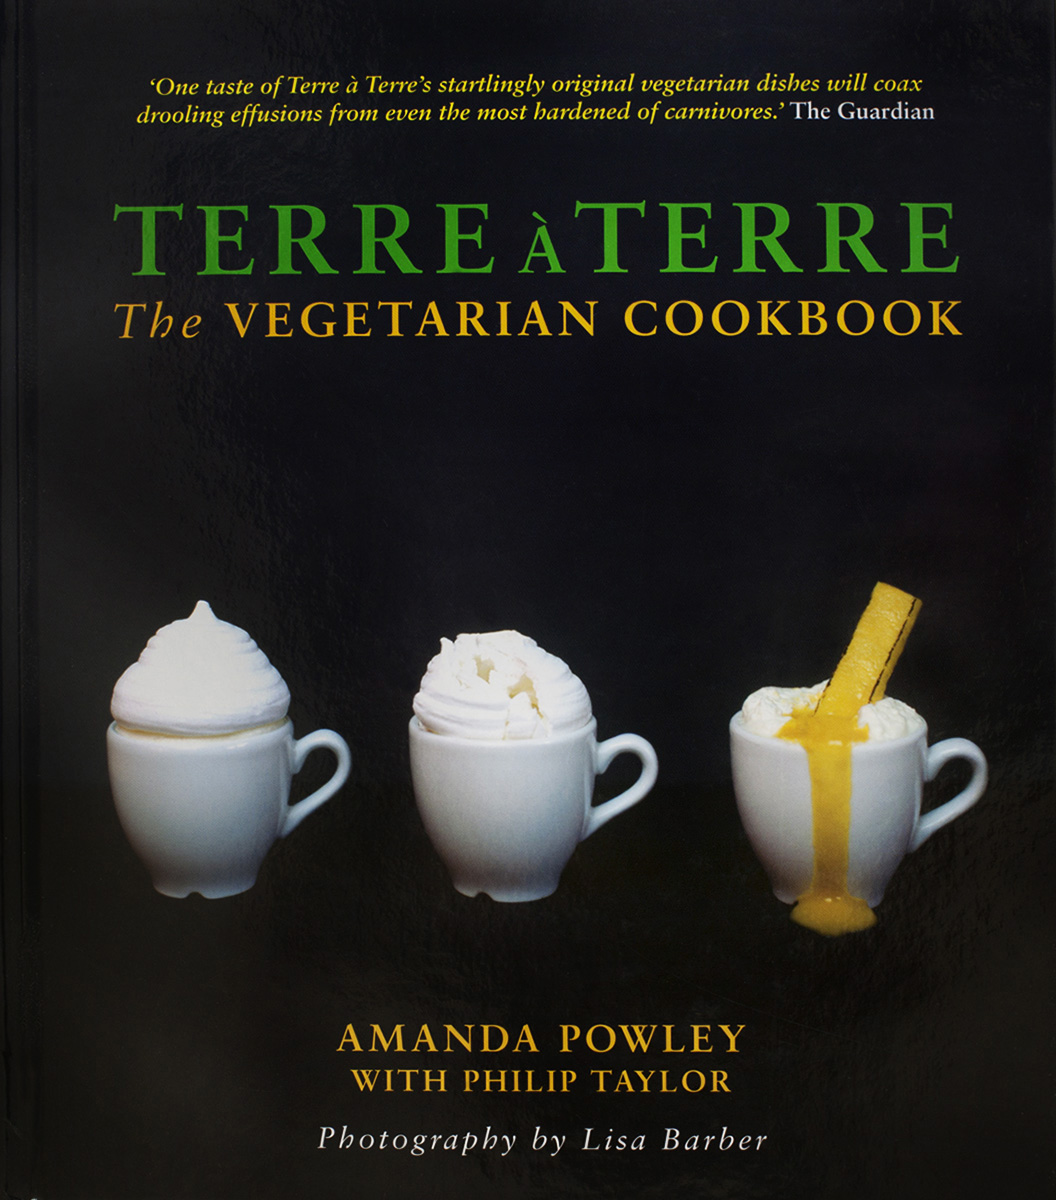 TERRE A TERRE THE VEGETARIAN COOKBOOK Amanda Powley